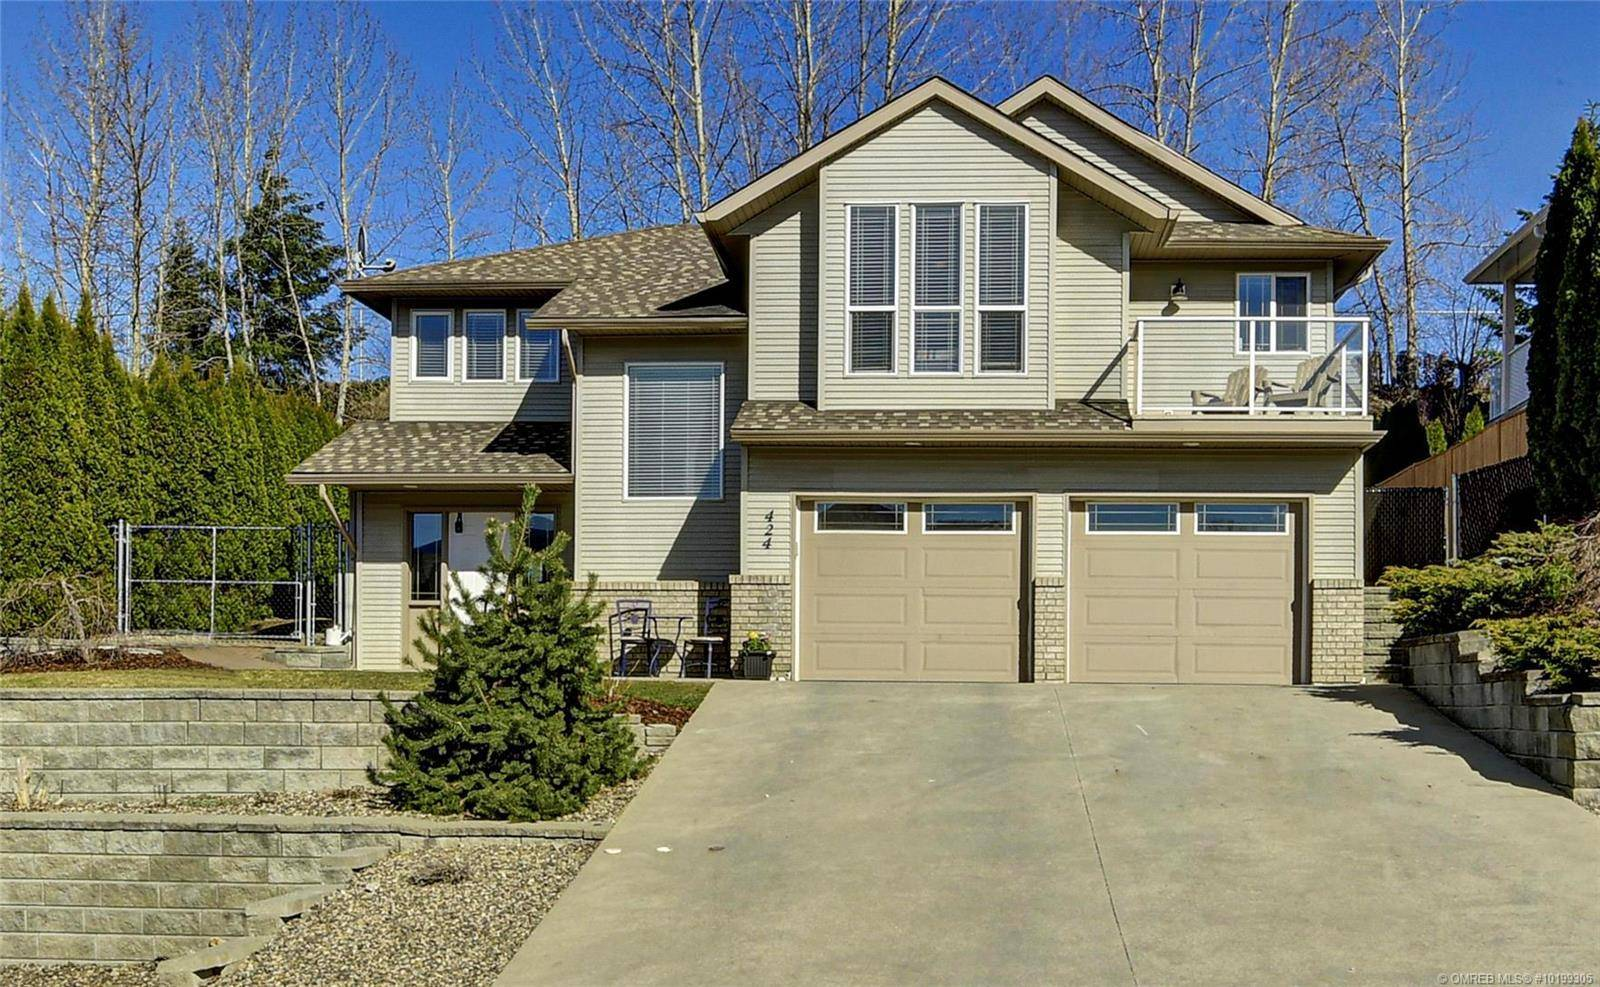 House for sale at 424 27 St Southeast Salmon Arm British Columbia - MLS: 10199305